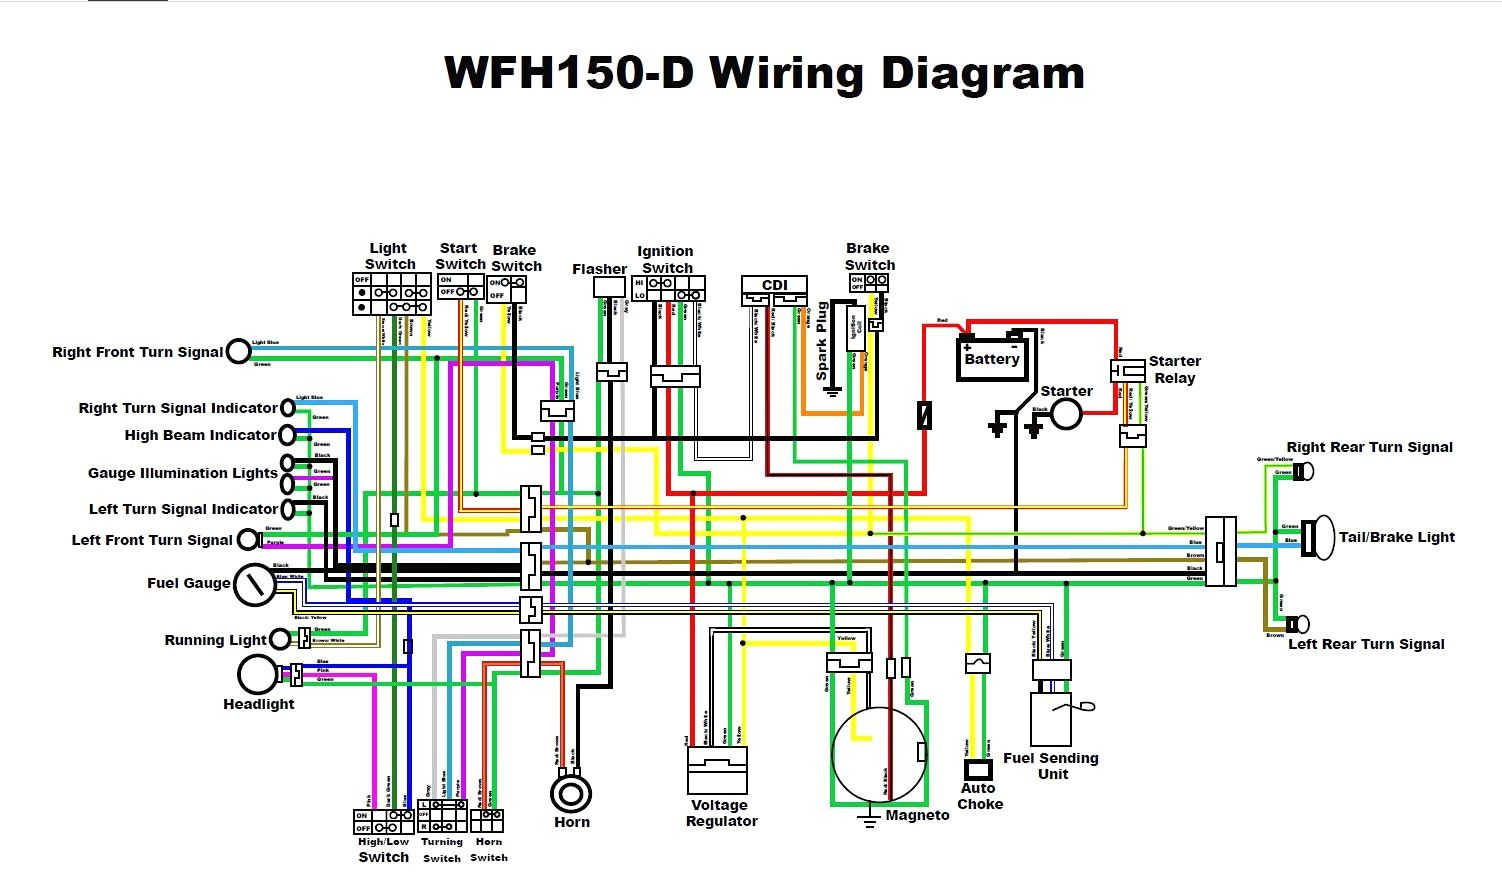 ddb2d79696dbe2c222b5ac529af3867e Yerf Dog Wiring Harness on go kart gy6 wiring harness, yerf dog spiderbox wiring breakdown, yamaha wiring harness, yerf dog electrical wiring schematic, suzuki wiring harness, lifan wiring harness, royal enfield wiring harness, husqvarna wiring harness, pocket bike wiring harness, carter talon wiring harness, yerf dog spiderbox wiring for lights, harley-davidson wiring harness,